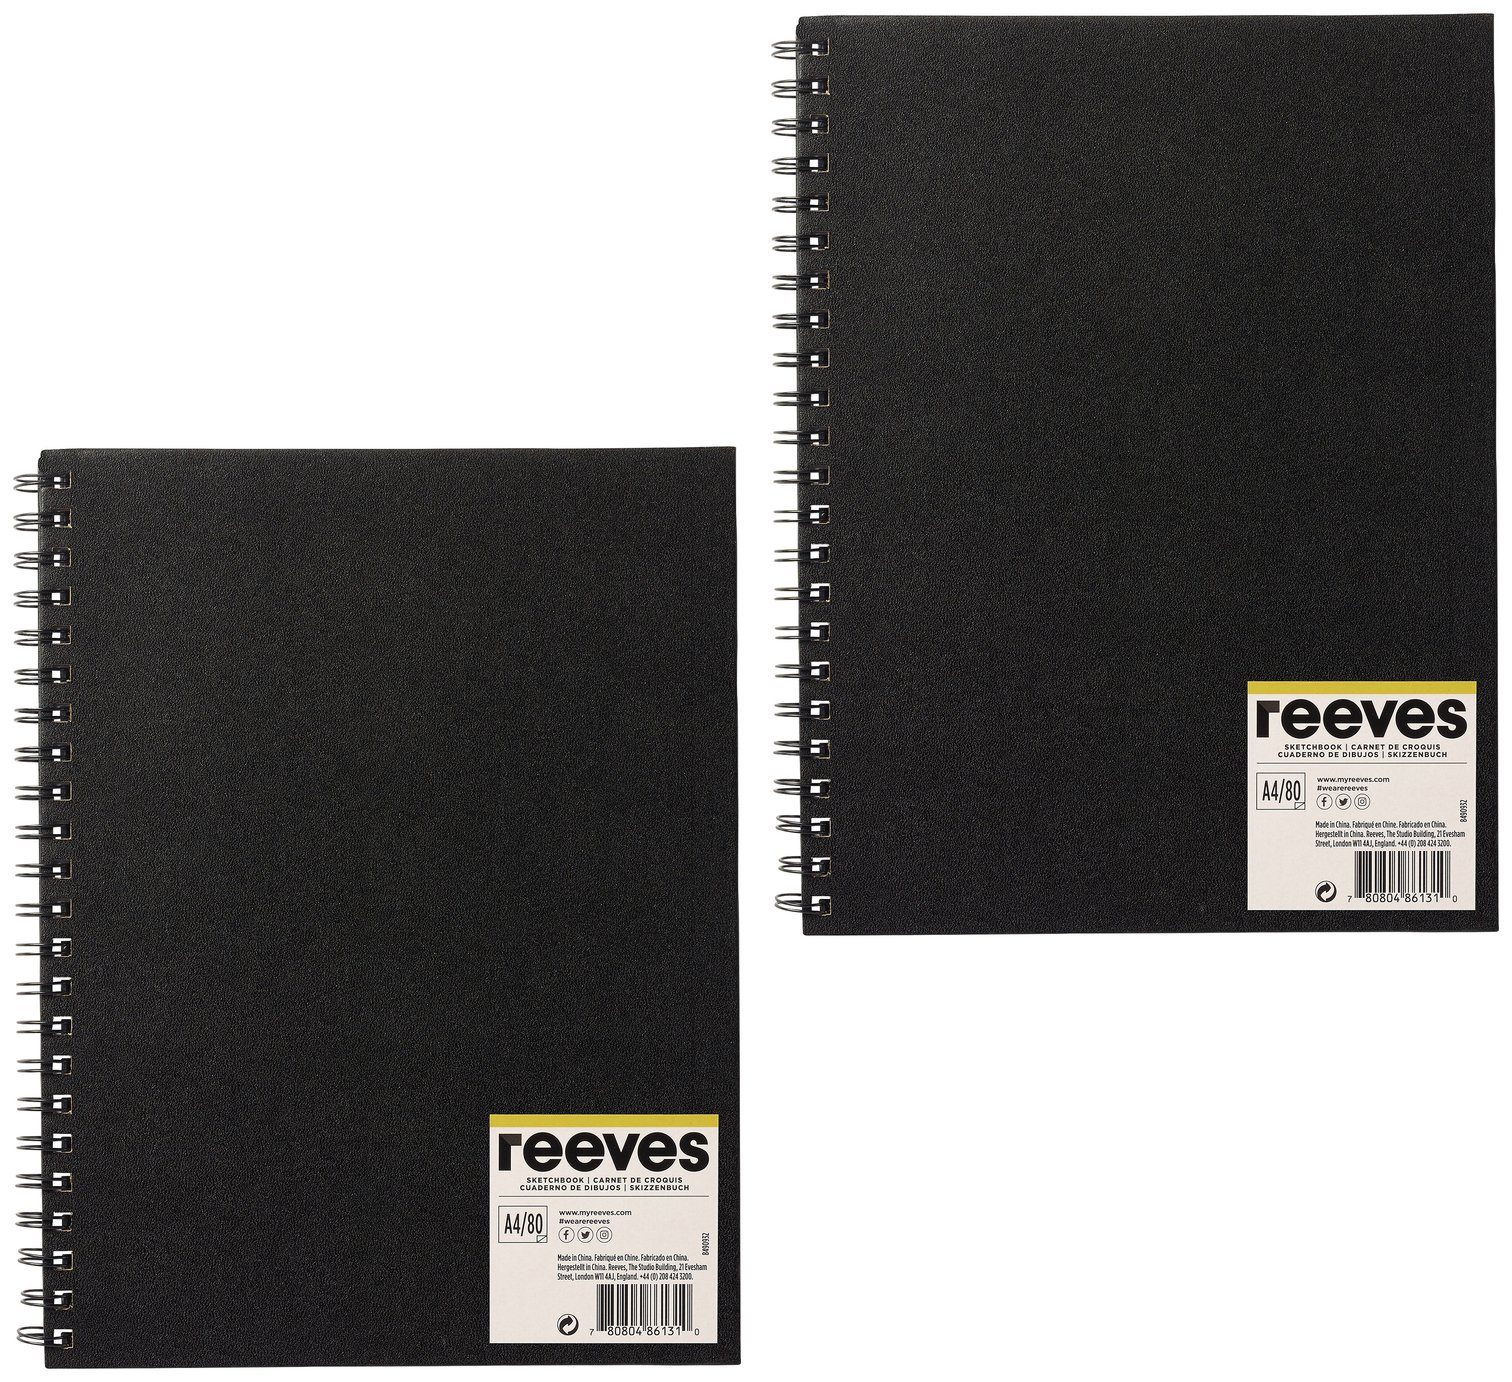 reeves-a4-sketch-book-2-pack